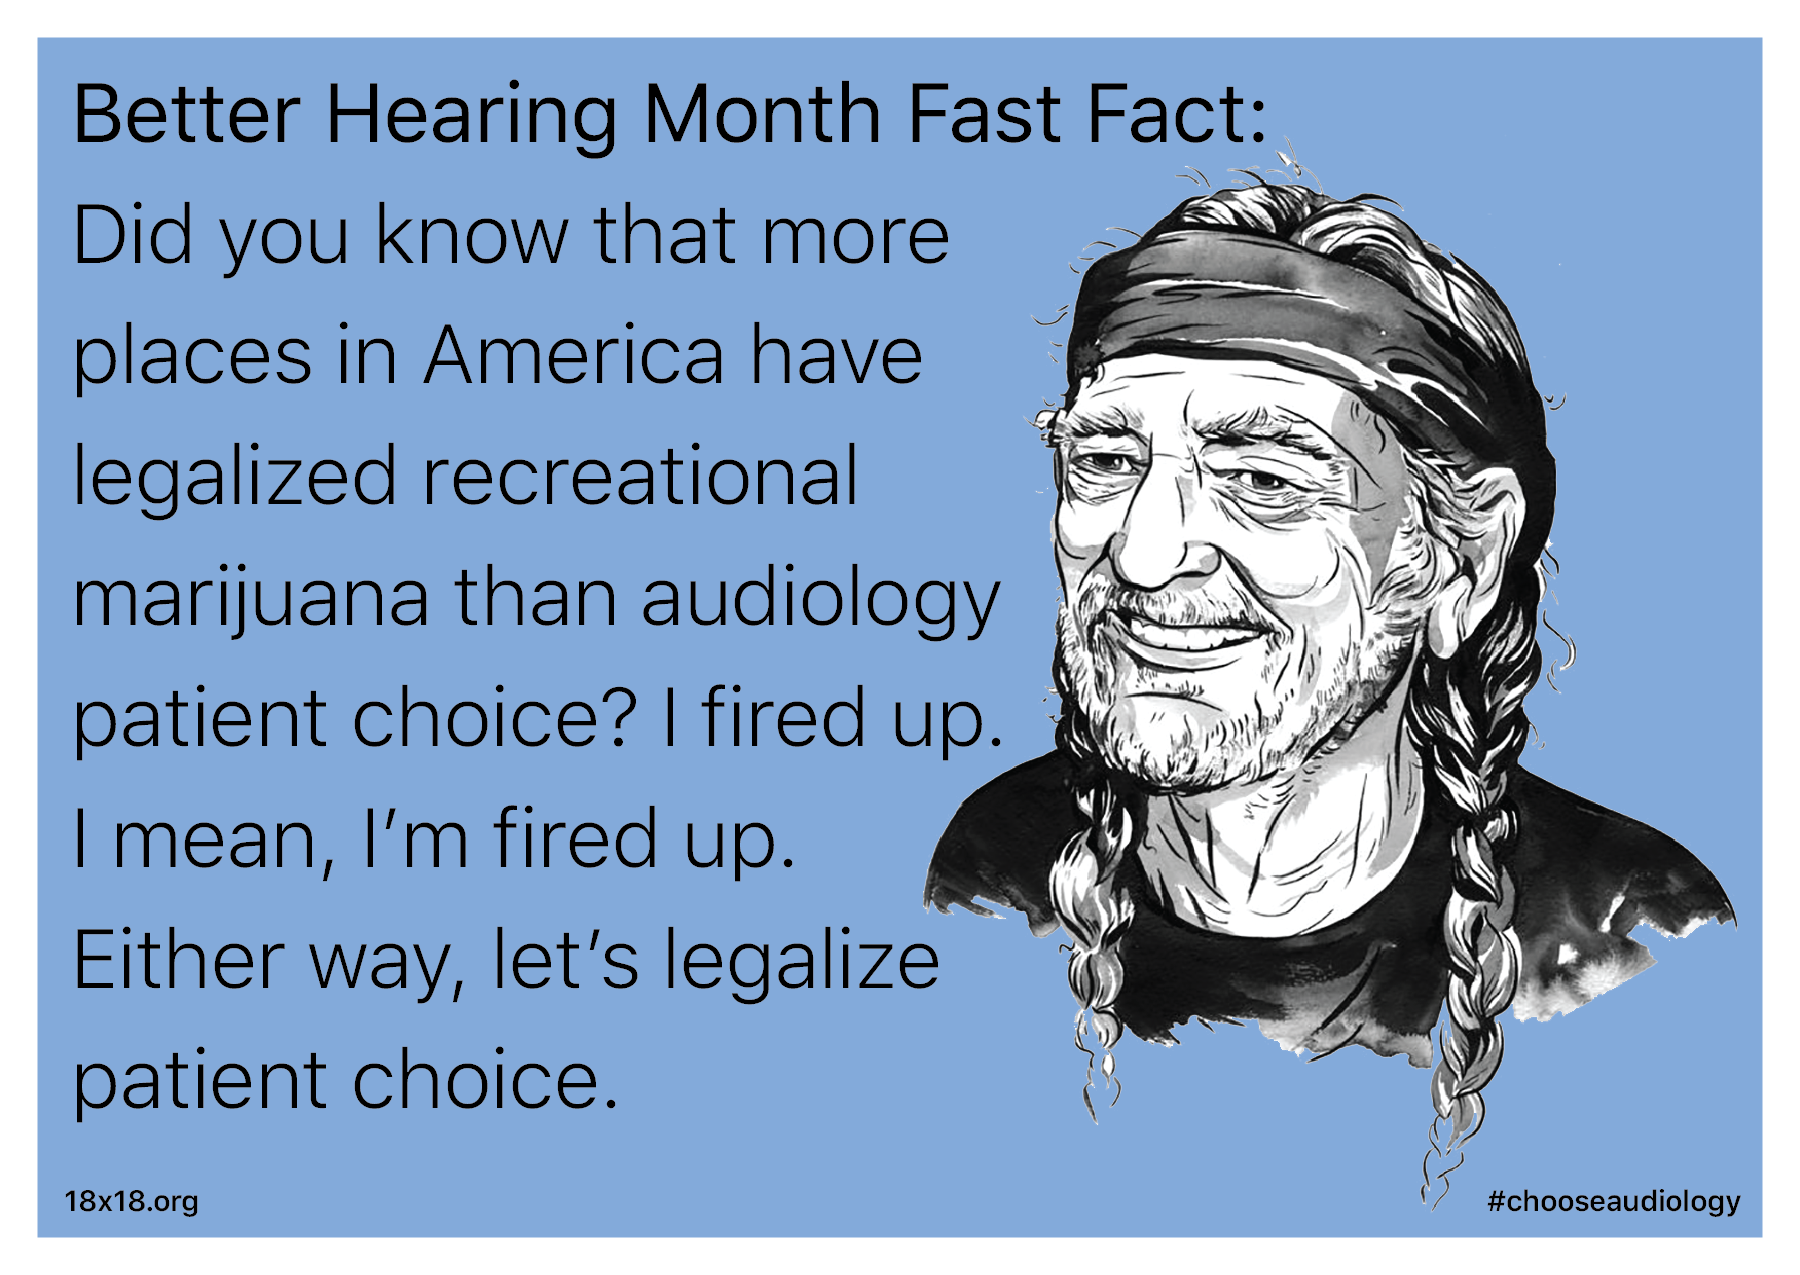 Did you know that more places in America have legalized recreational marijuana than audiology patient choice? I fired up. I mean, I'm fired up. Either way, let's legalize patient choice.